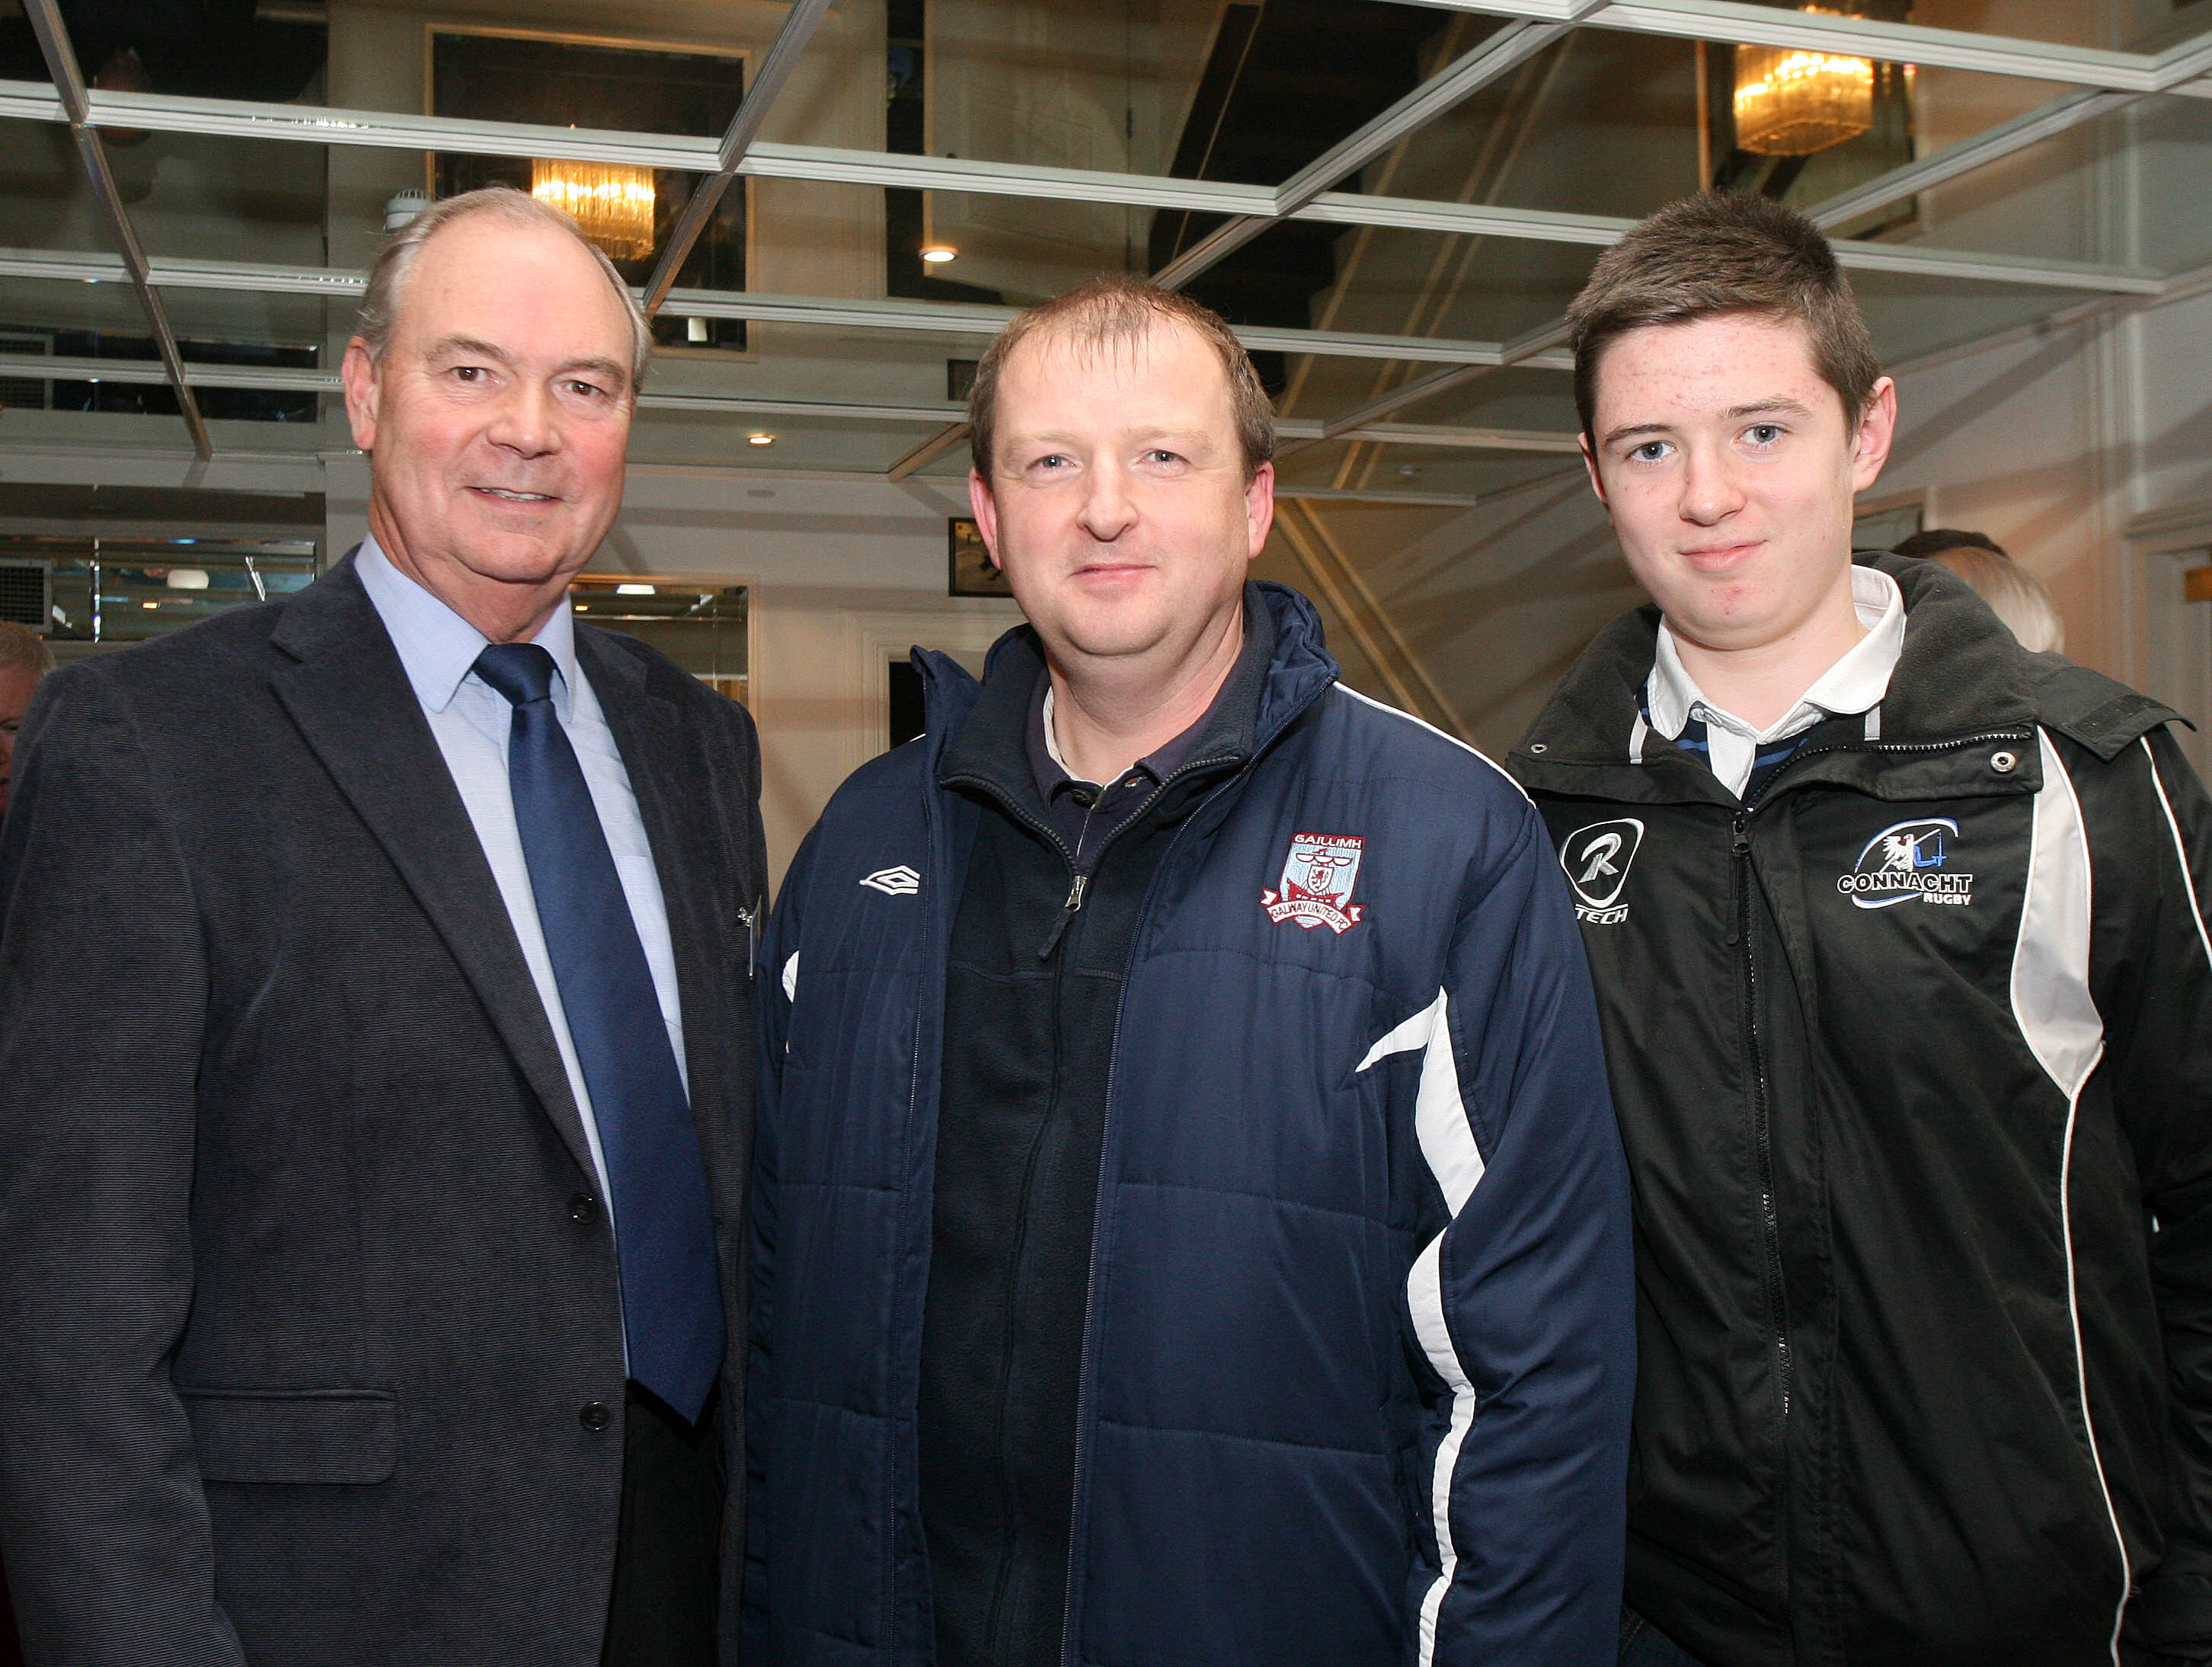 Cliff Rowe, committee member, with John and Seán Gilmore, Corrandulla, at the launch of the Galway Soccer Co-op supporting Galway United at Hotel Meyrick.